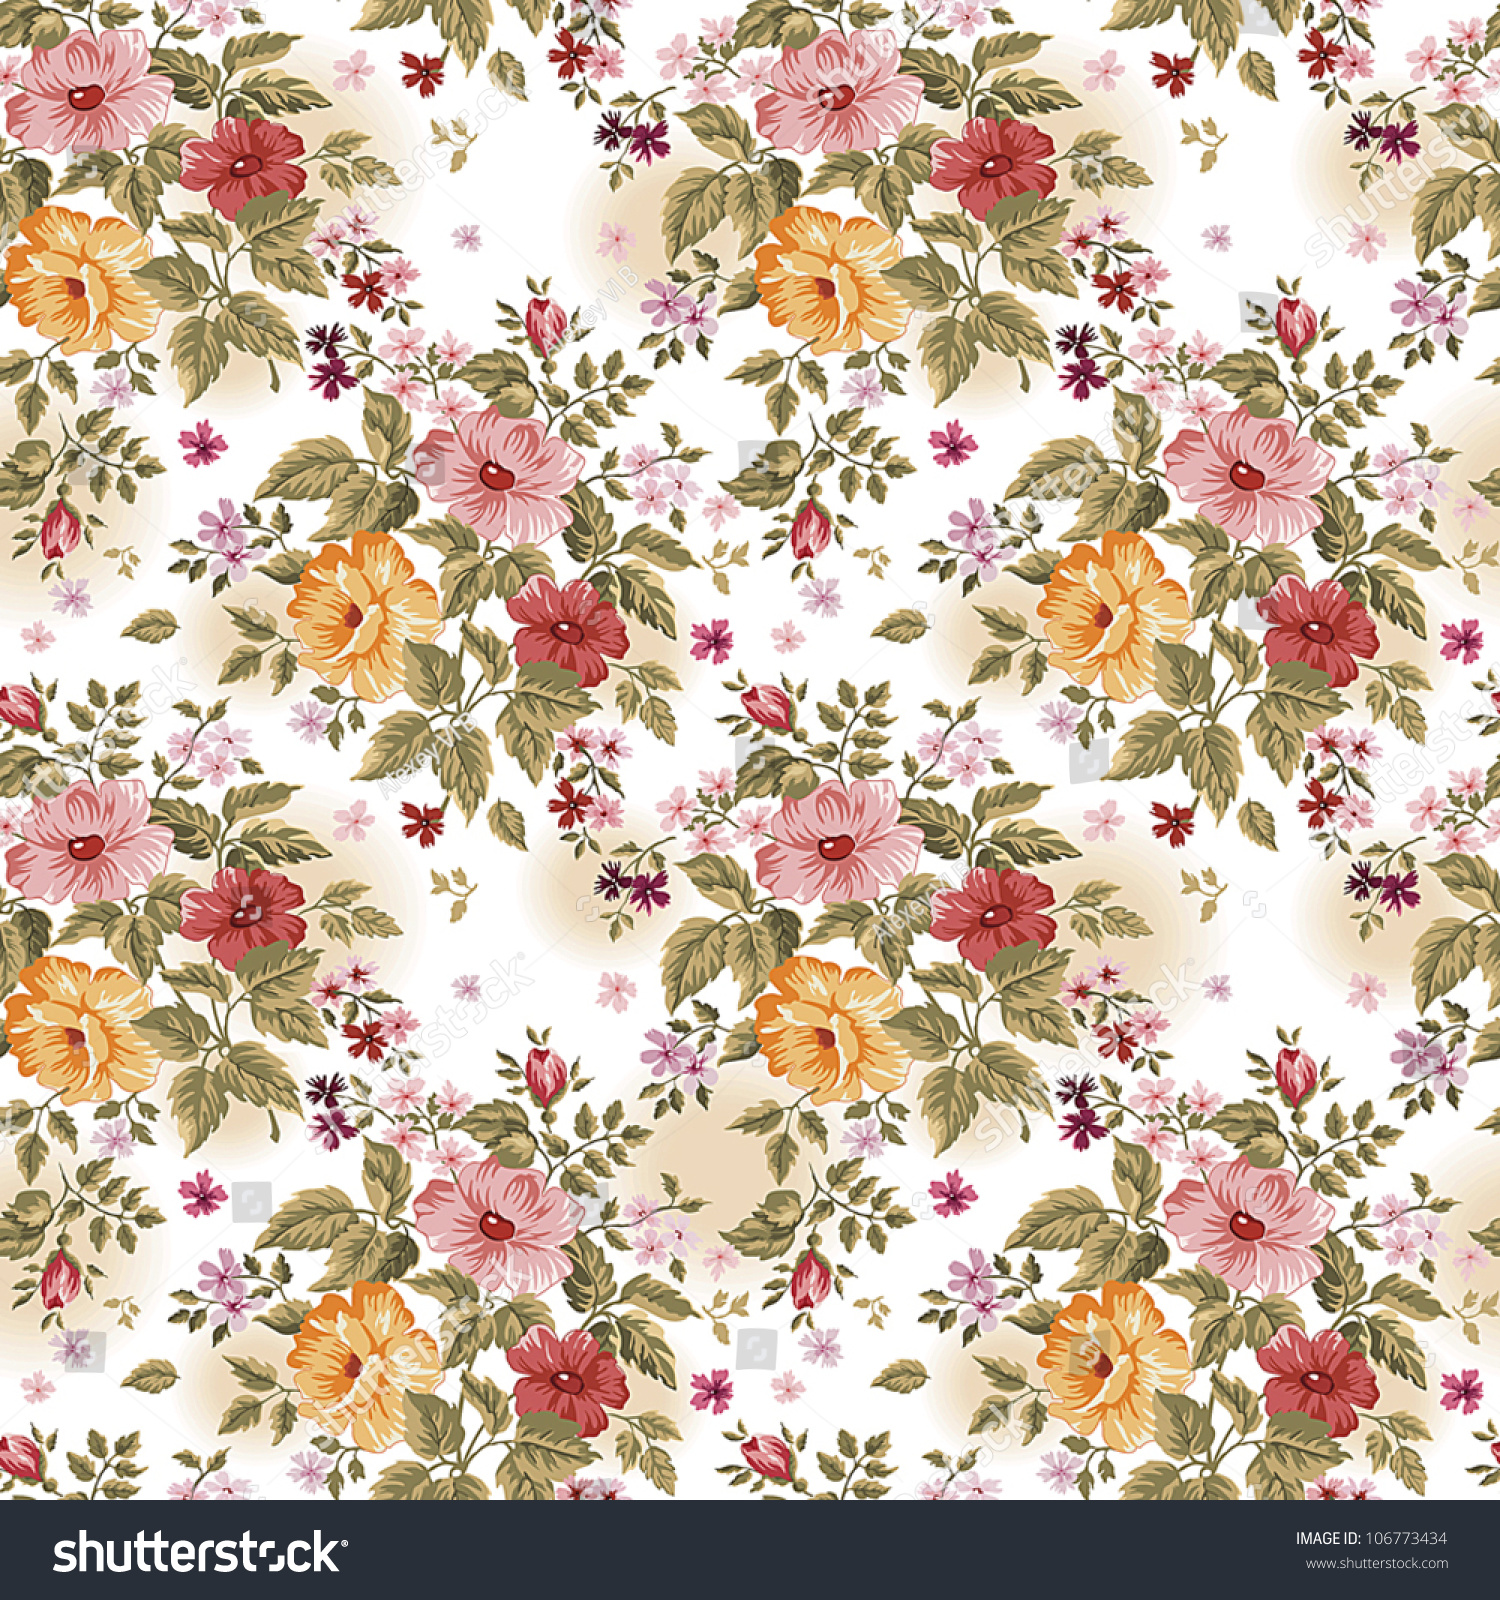 Bright Floral Seamless On White Background Stock Vector ...